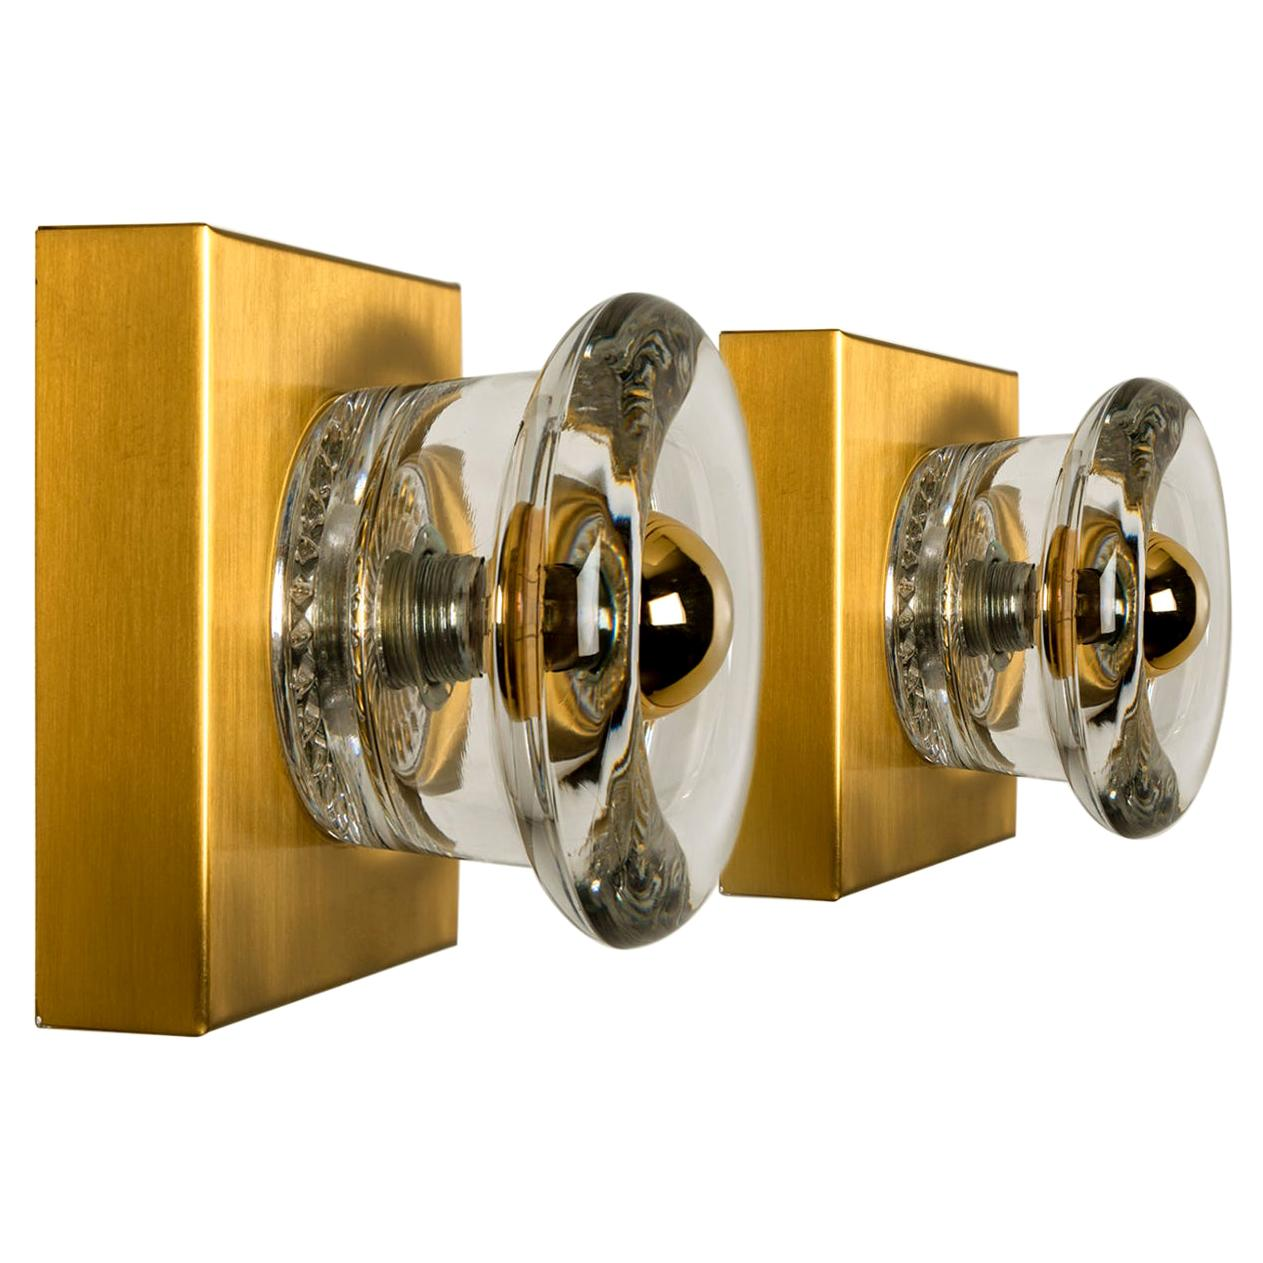 Pair of Glass Brass Wall Sconces Flush Mounts Cosack Lights, Germany, 1970s